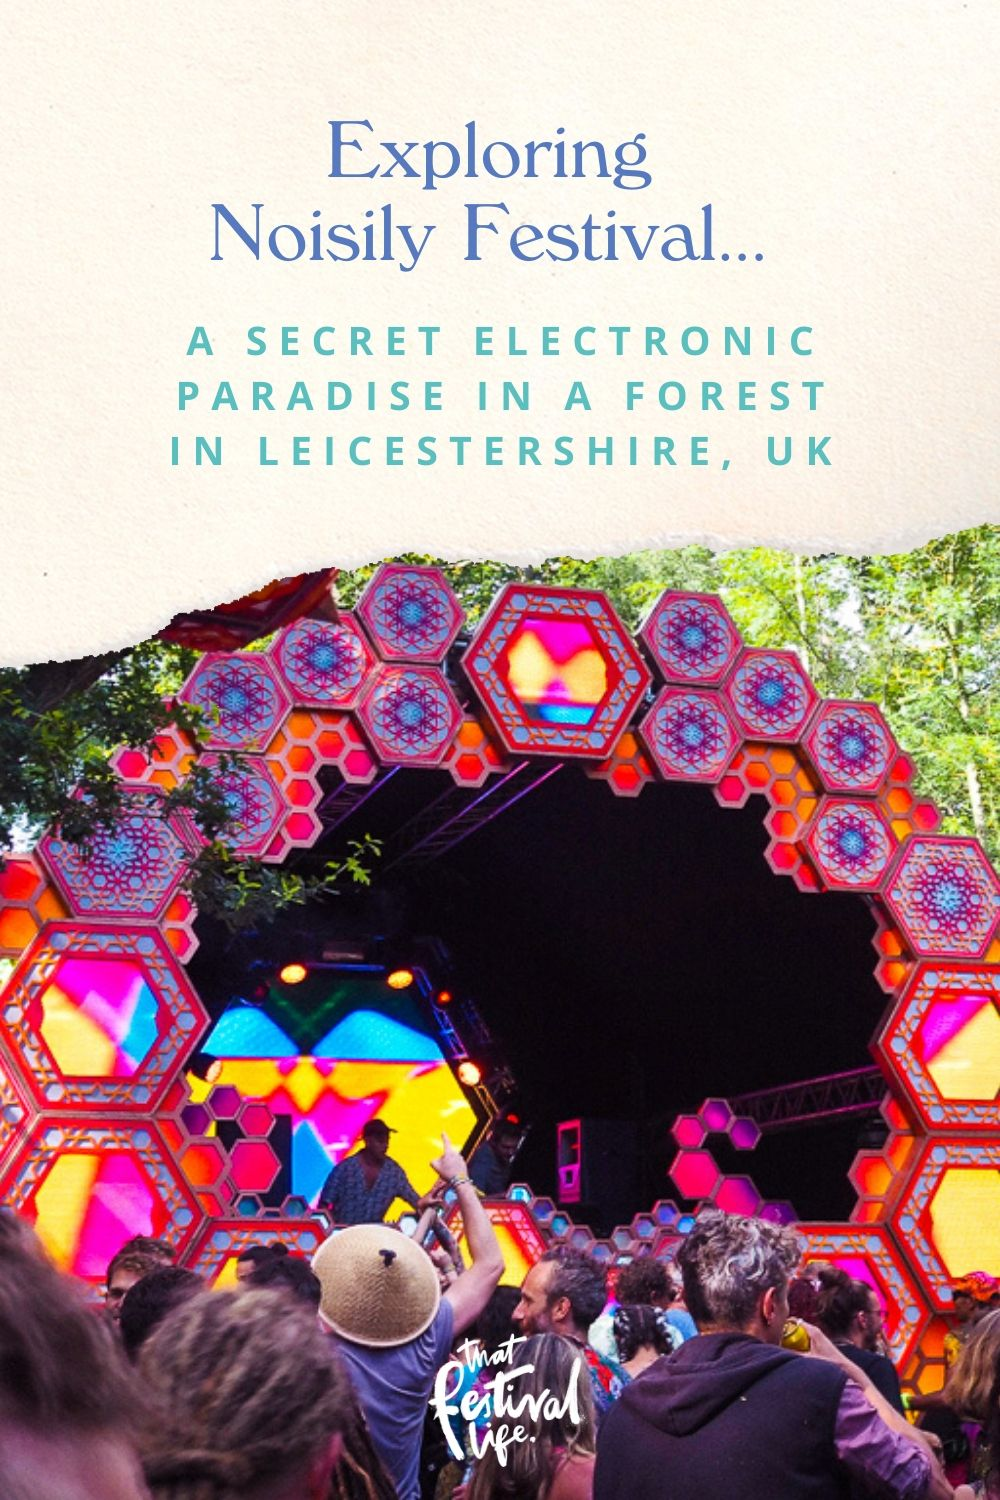 A Guide to Noisily Festival, Leicester, UK